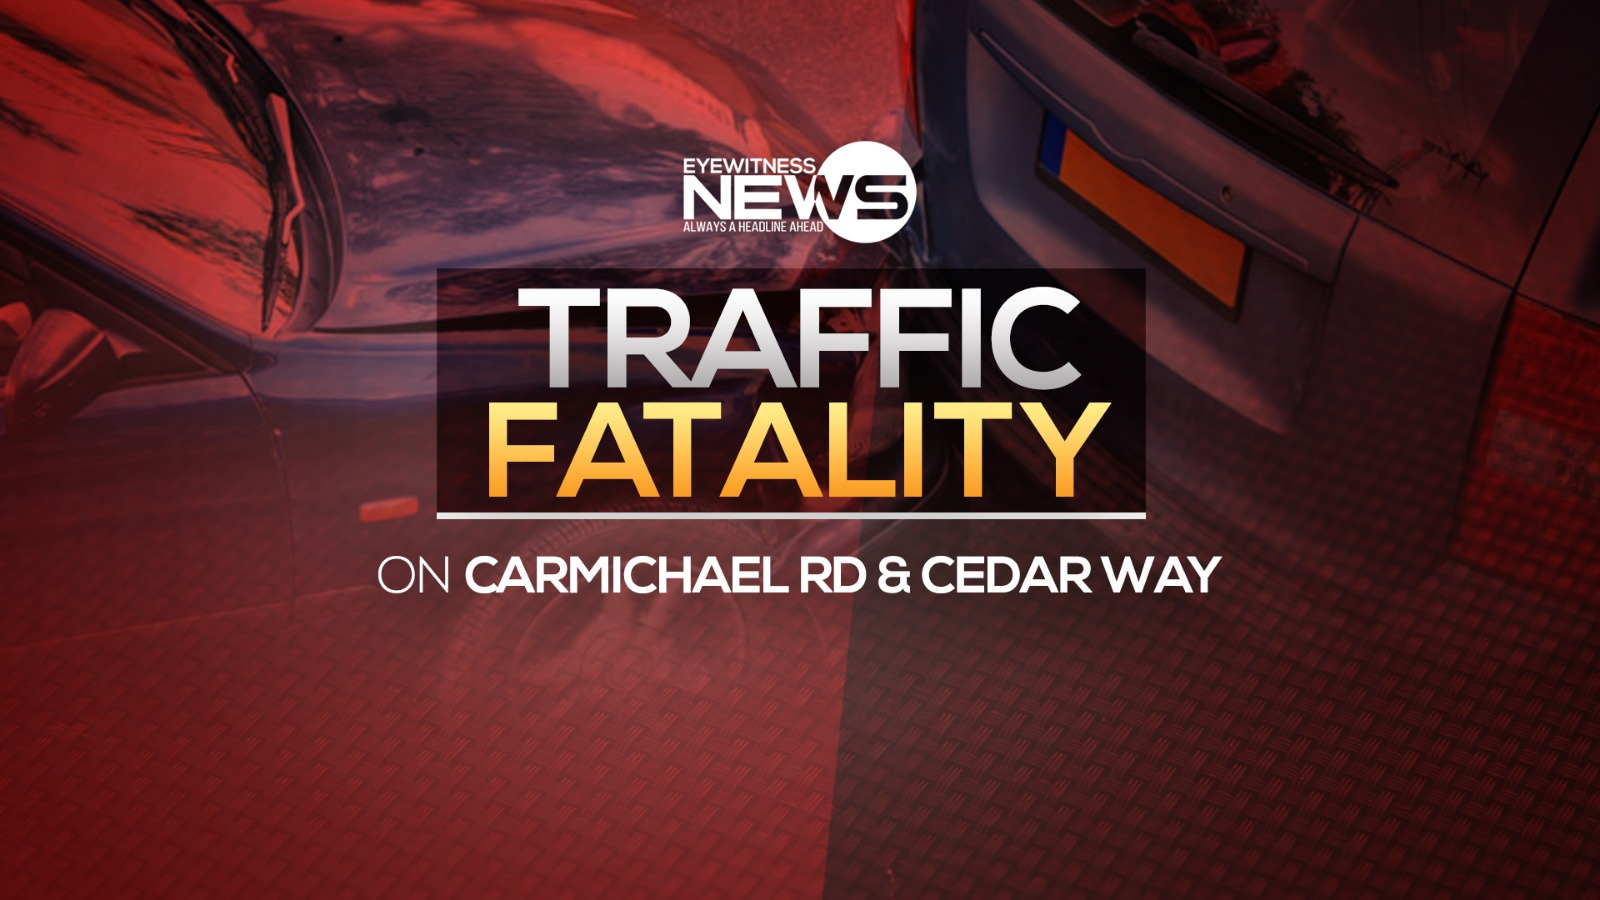 Motorcyclist is country's 18th traffic fatality